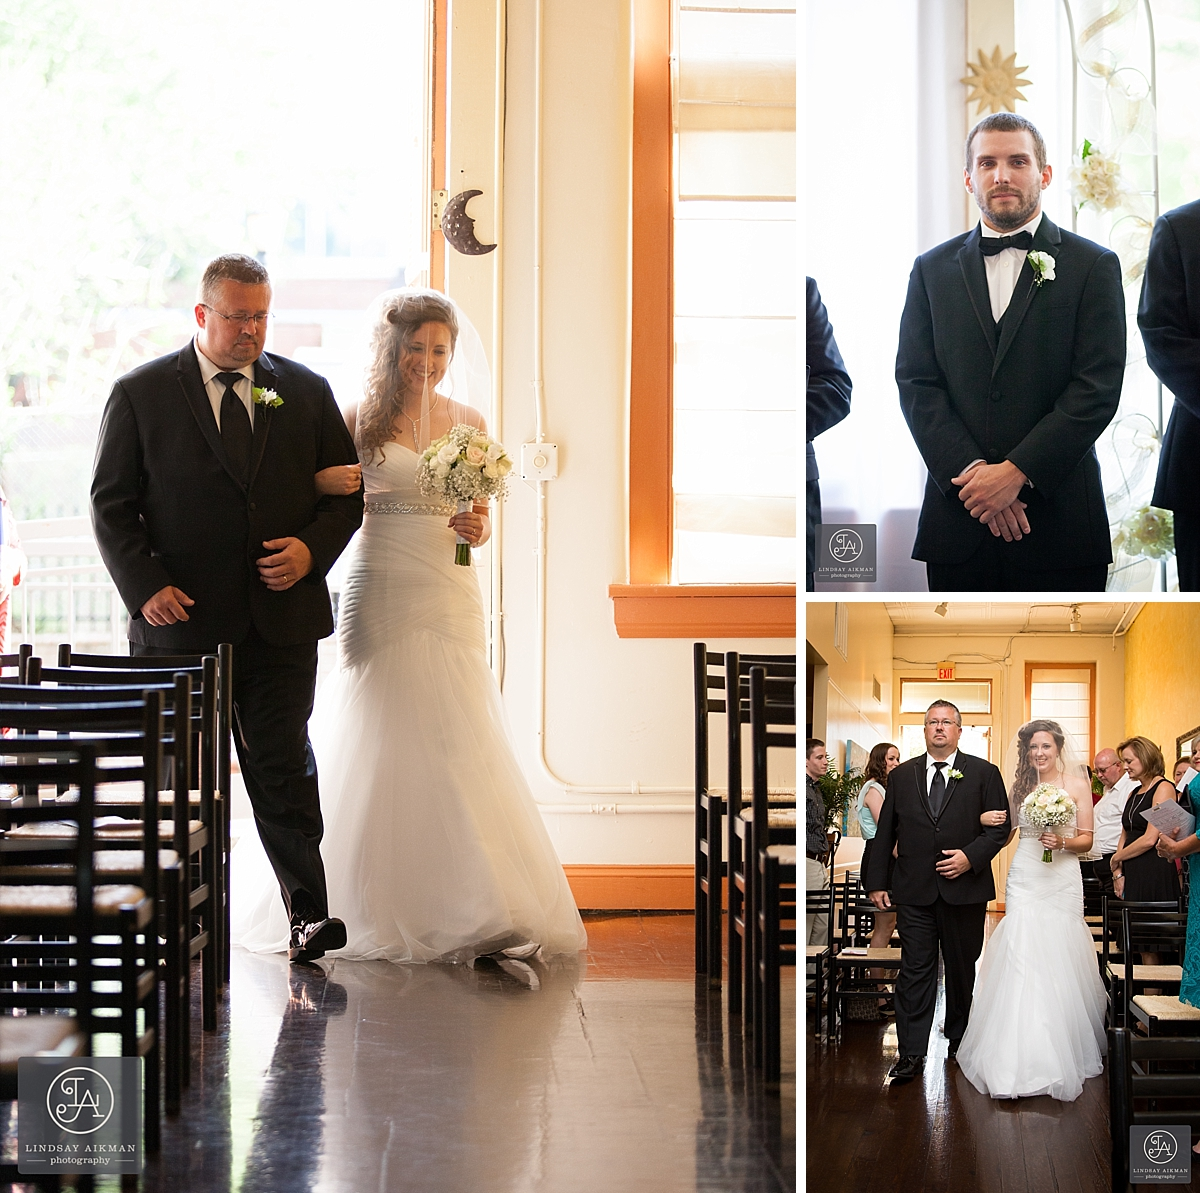 Raleigh Wedding Photographer: Megan & Brian's Downtown Raleigh Wedding